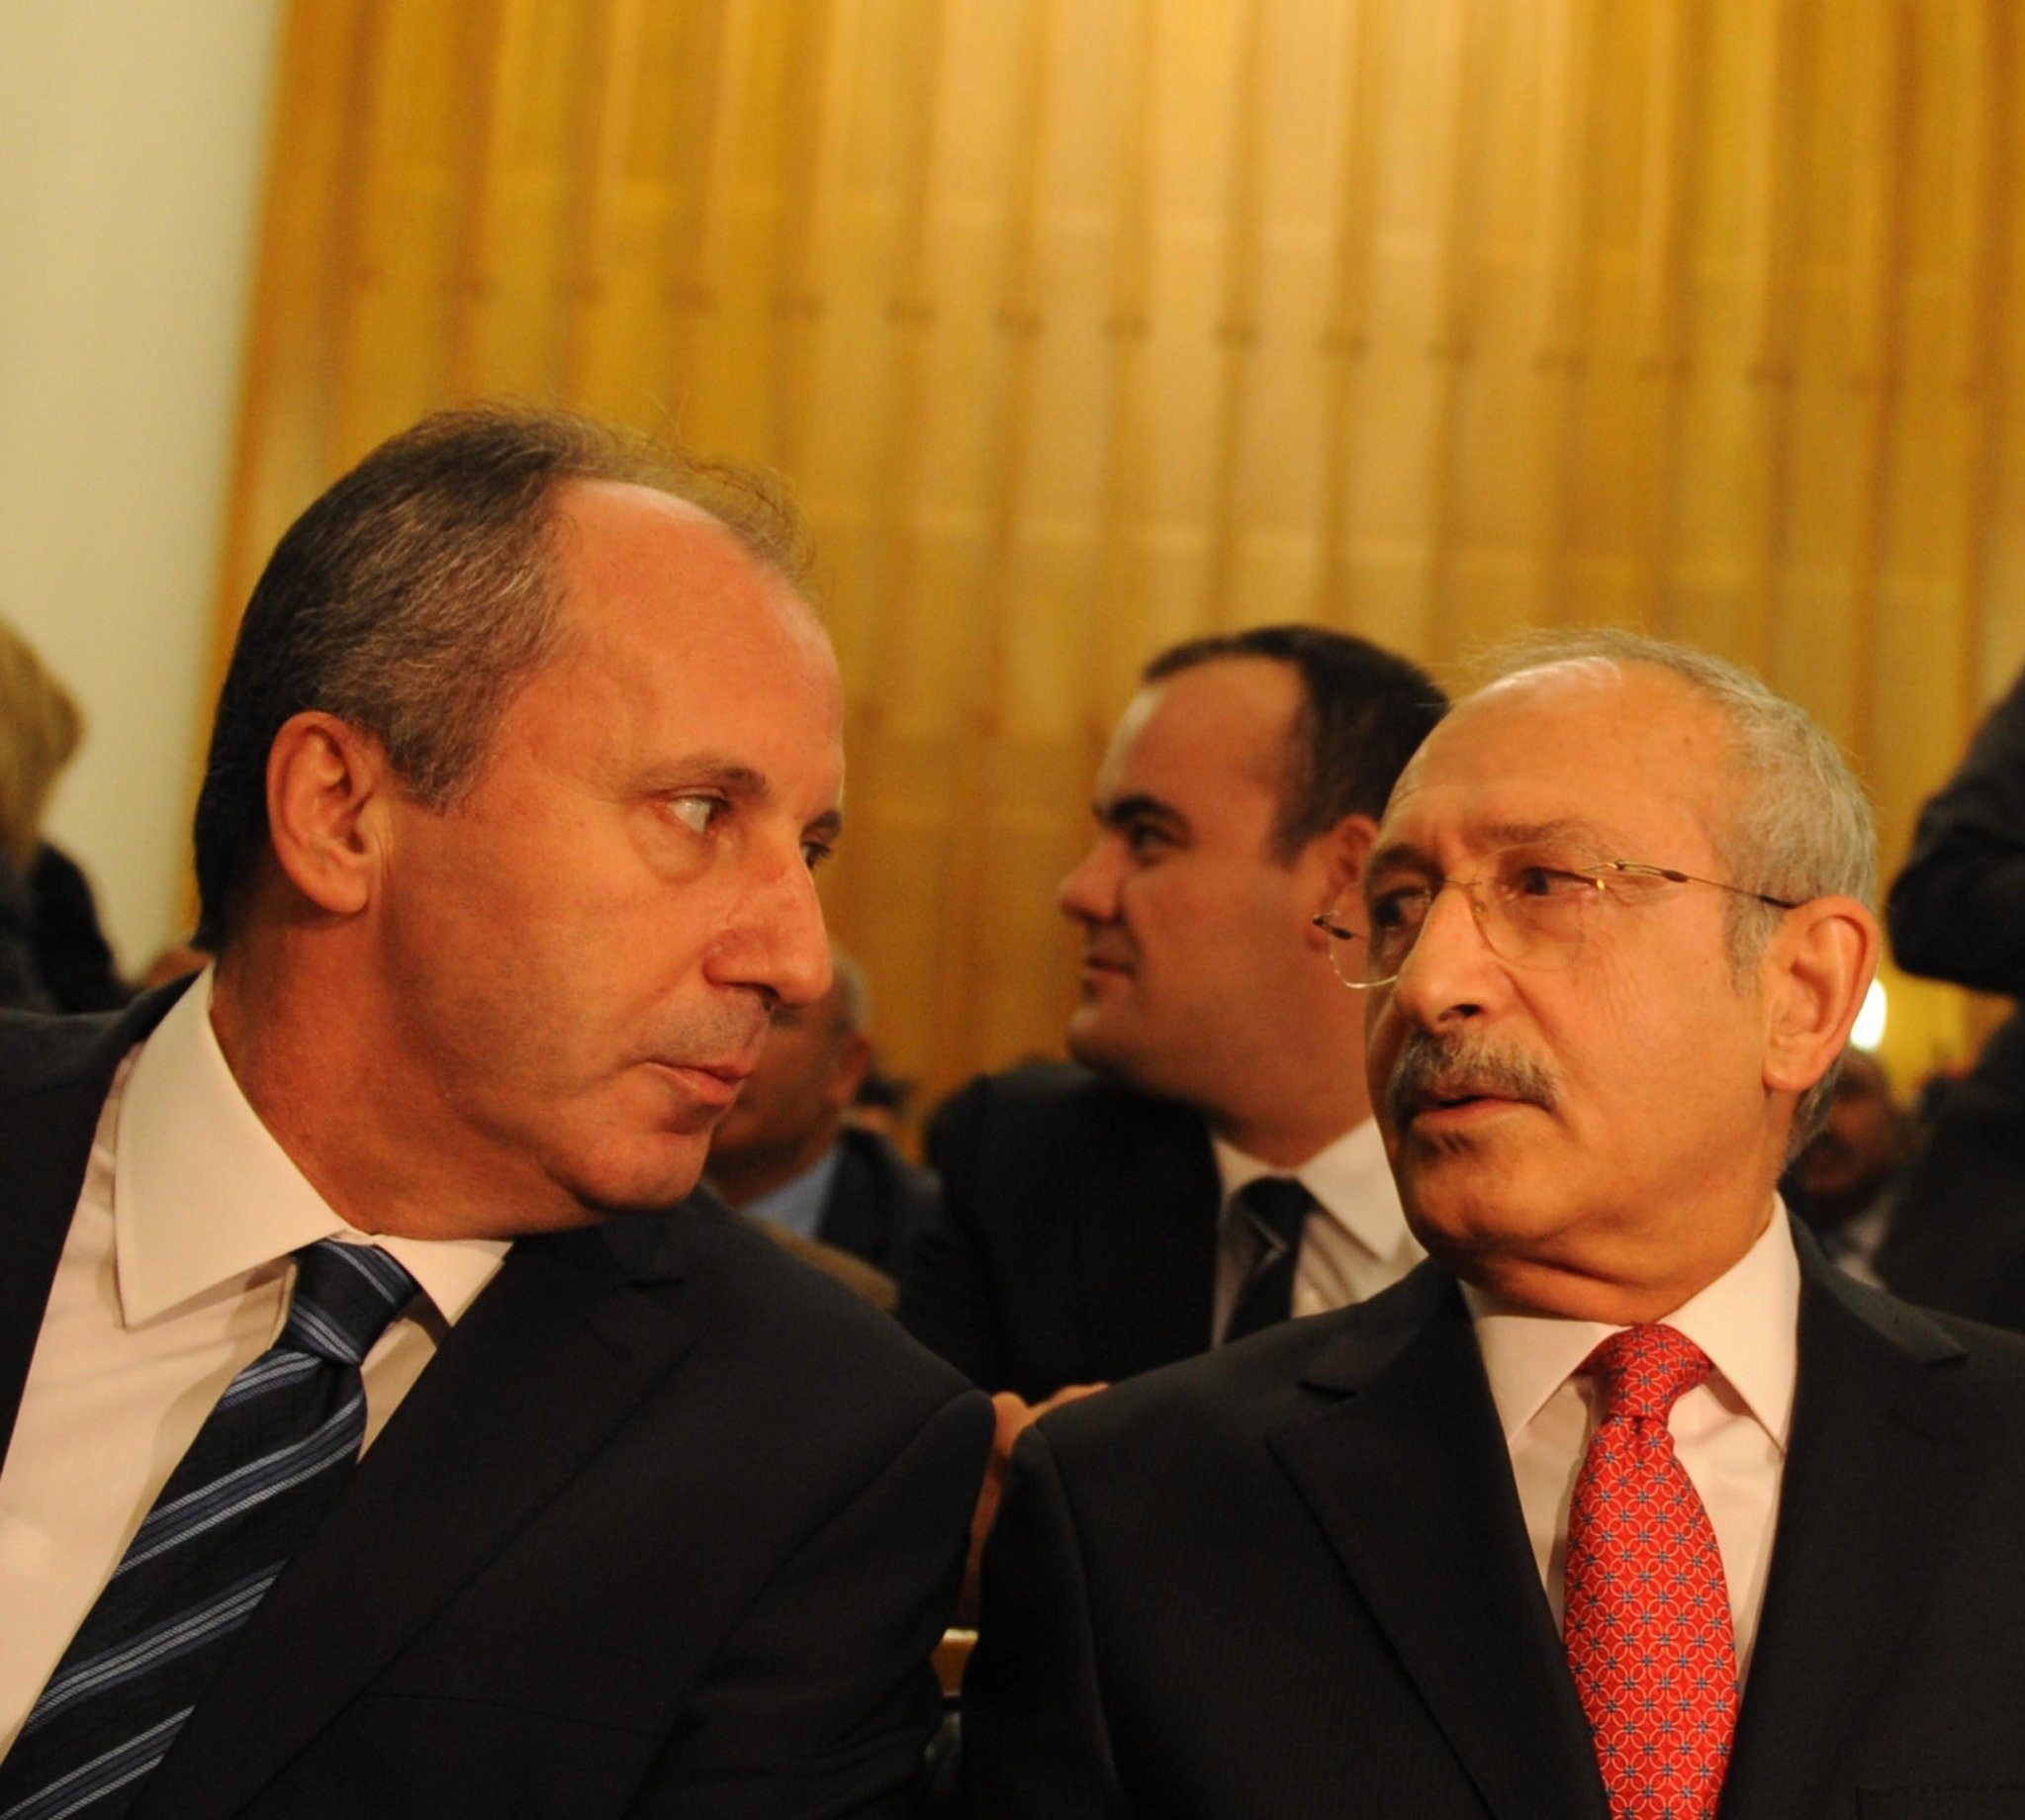 The poor results in the June 24 elections inflamed a bitter feud within the CHP administration, with the partyu2019s presidential candidate Muharrem u0130nce openly challenging current party  Chairman Kemal Ku0131lu0131u00e7darou011flu.